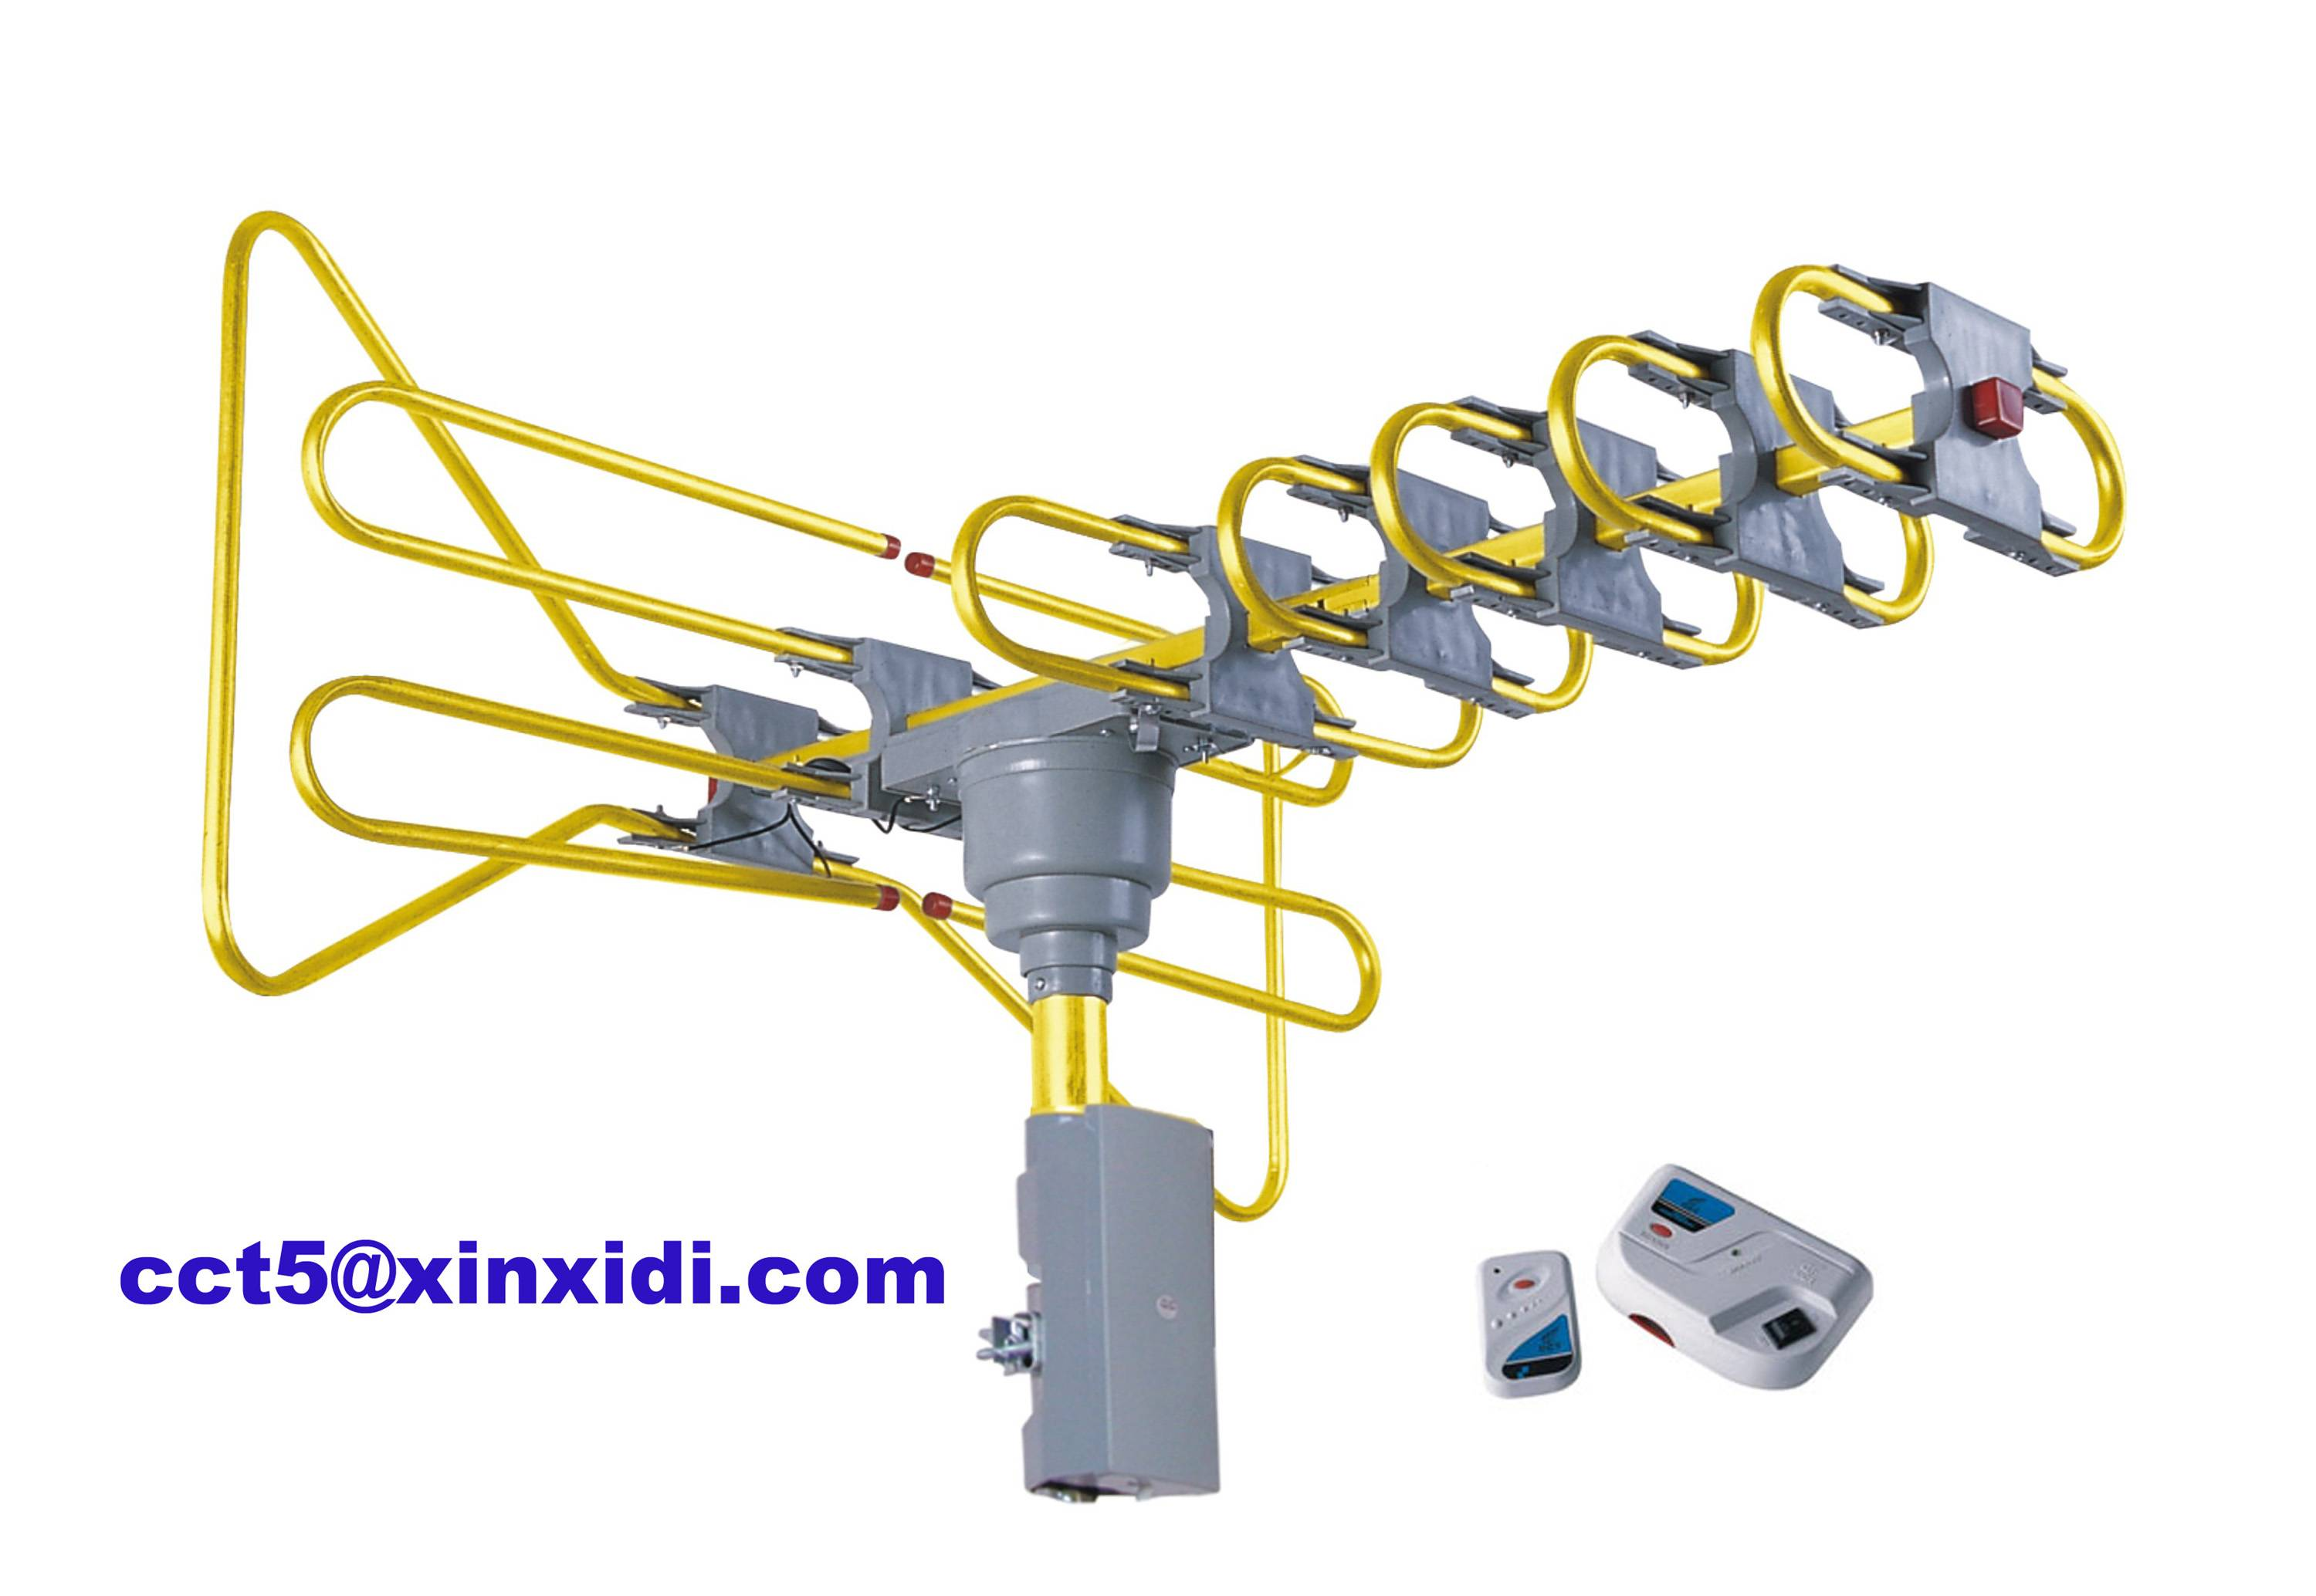 Golden Color Fix Easily Remote-controlled Rotating Outdoor TV Antenna DT-808C (Xinxidi - CCT)